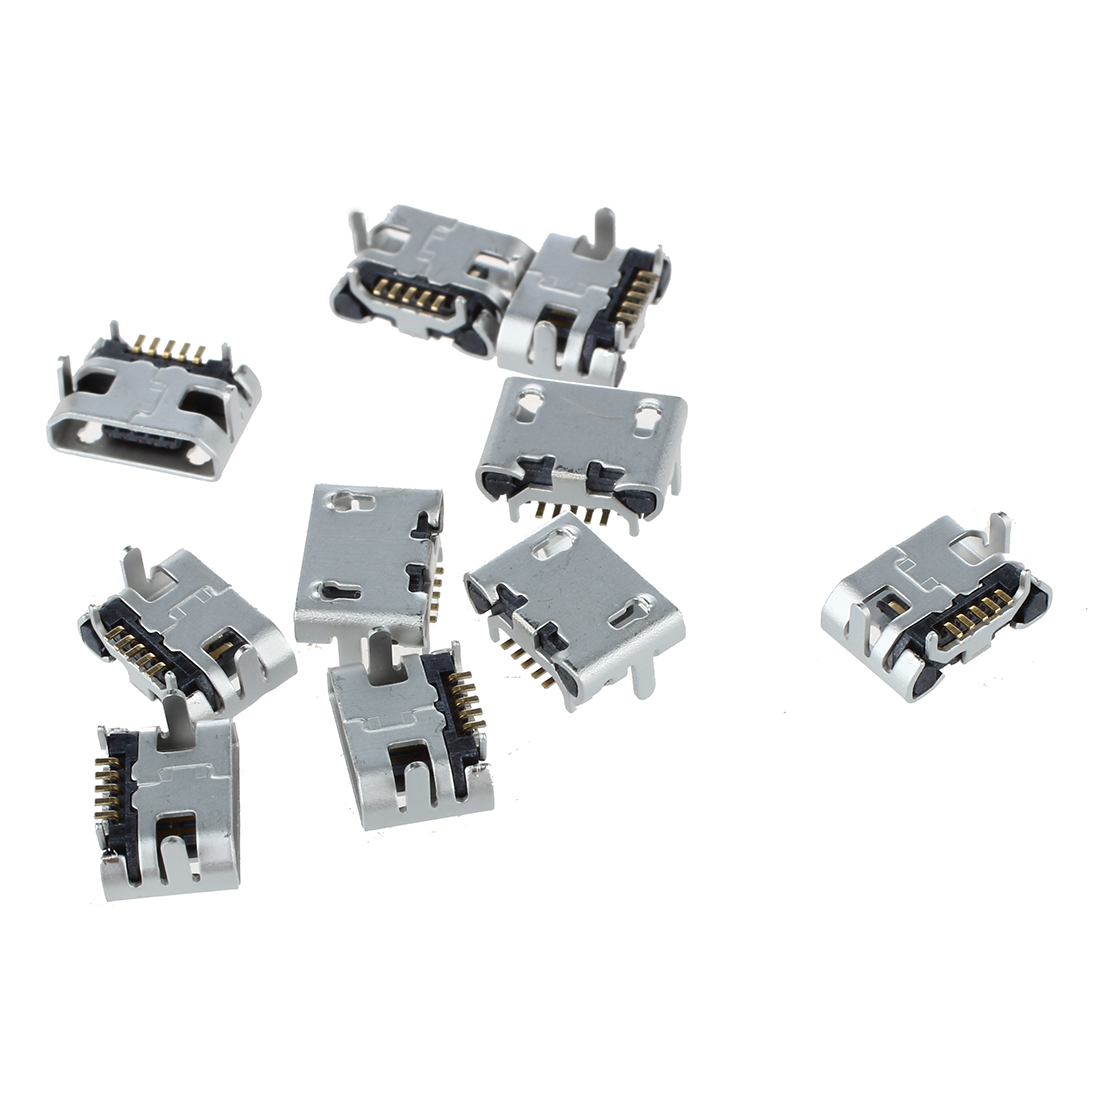 10 Pcs Micro USB Connector 5 Pin Usb Jack Charging Socket Female For MP3/4/5 Huawei Lenovo ZTE And Other Mobile Table Tels Set